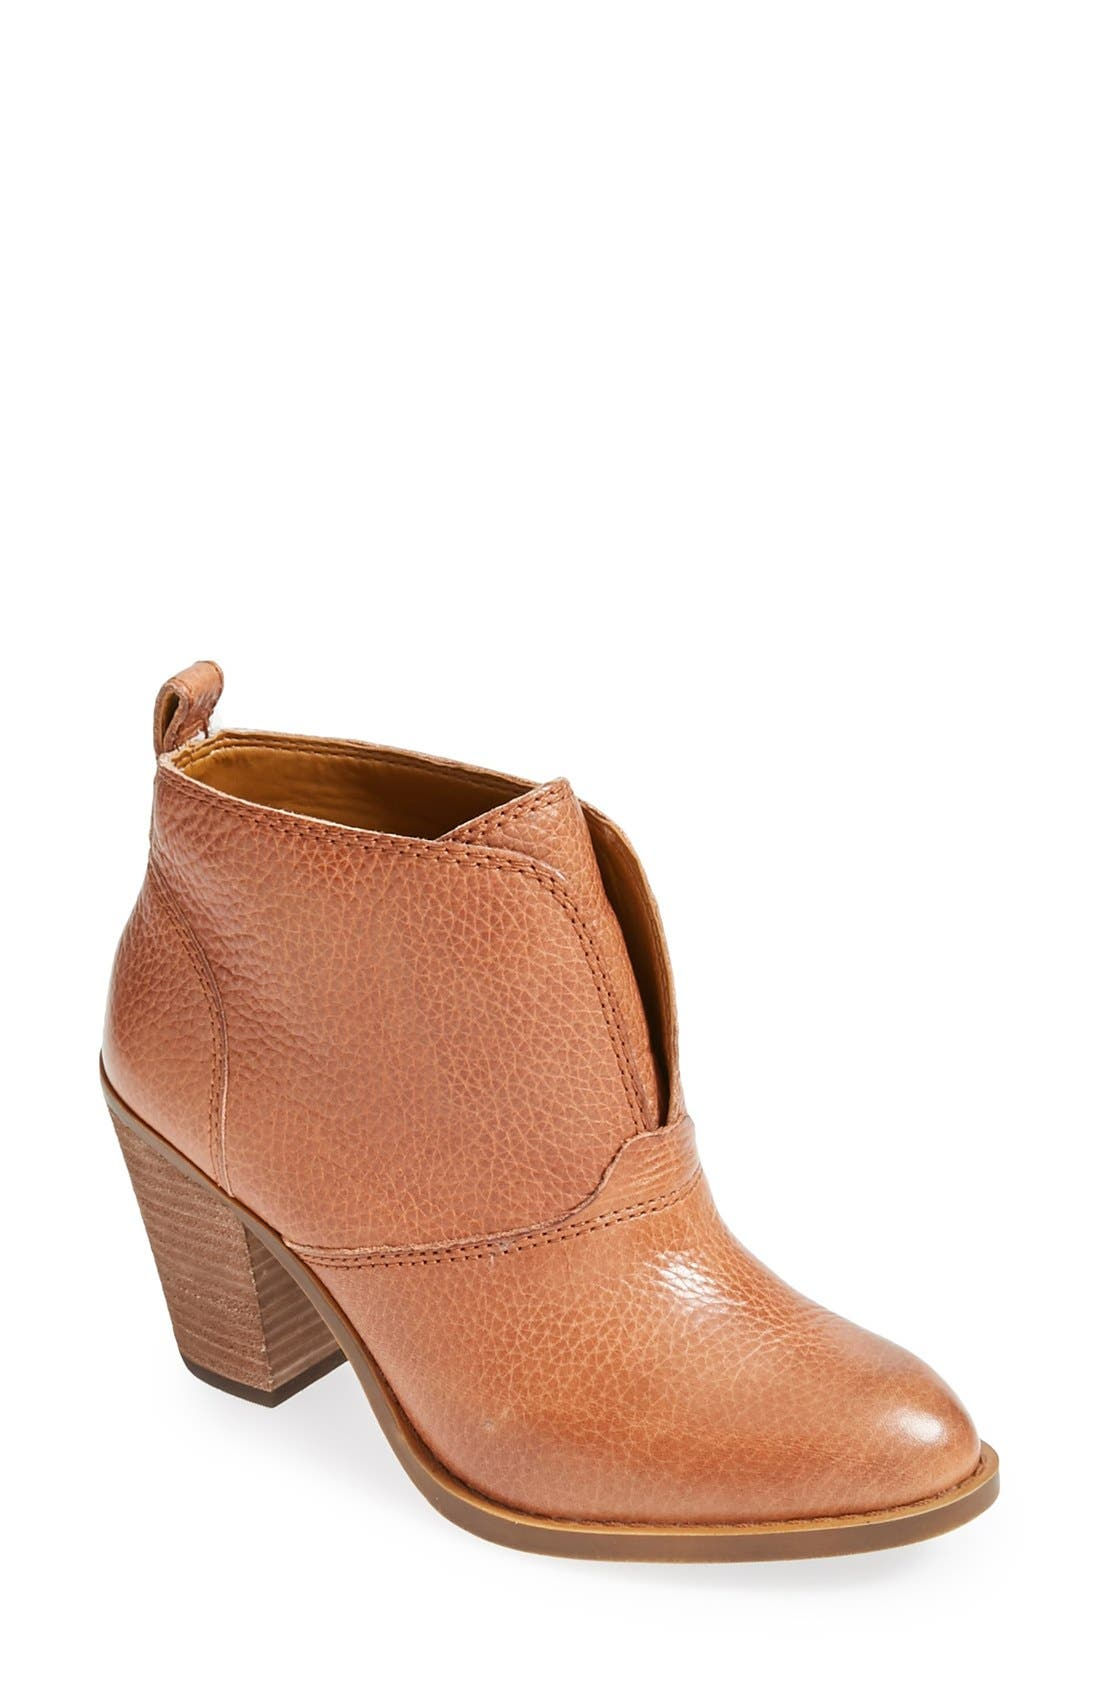 Main Image - Lucky Brand 'Ehllen' Textured Leather Bootie (Women)